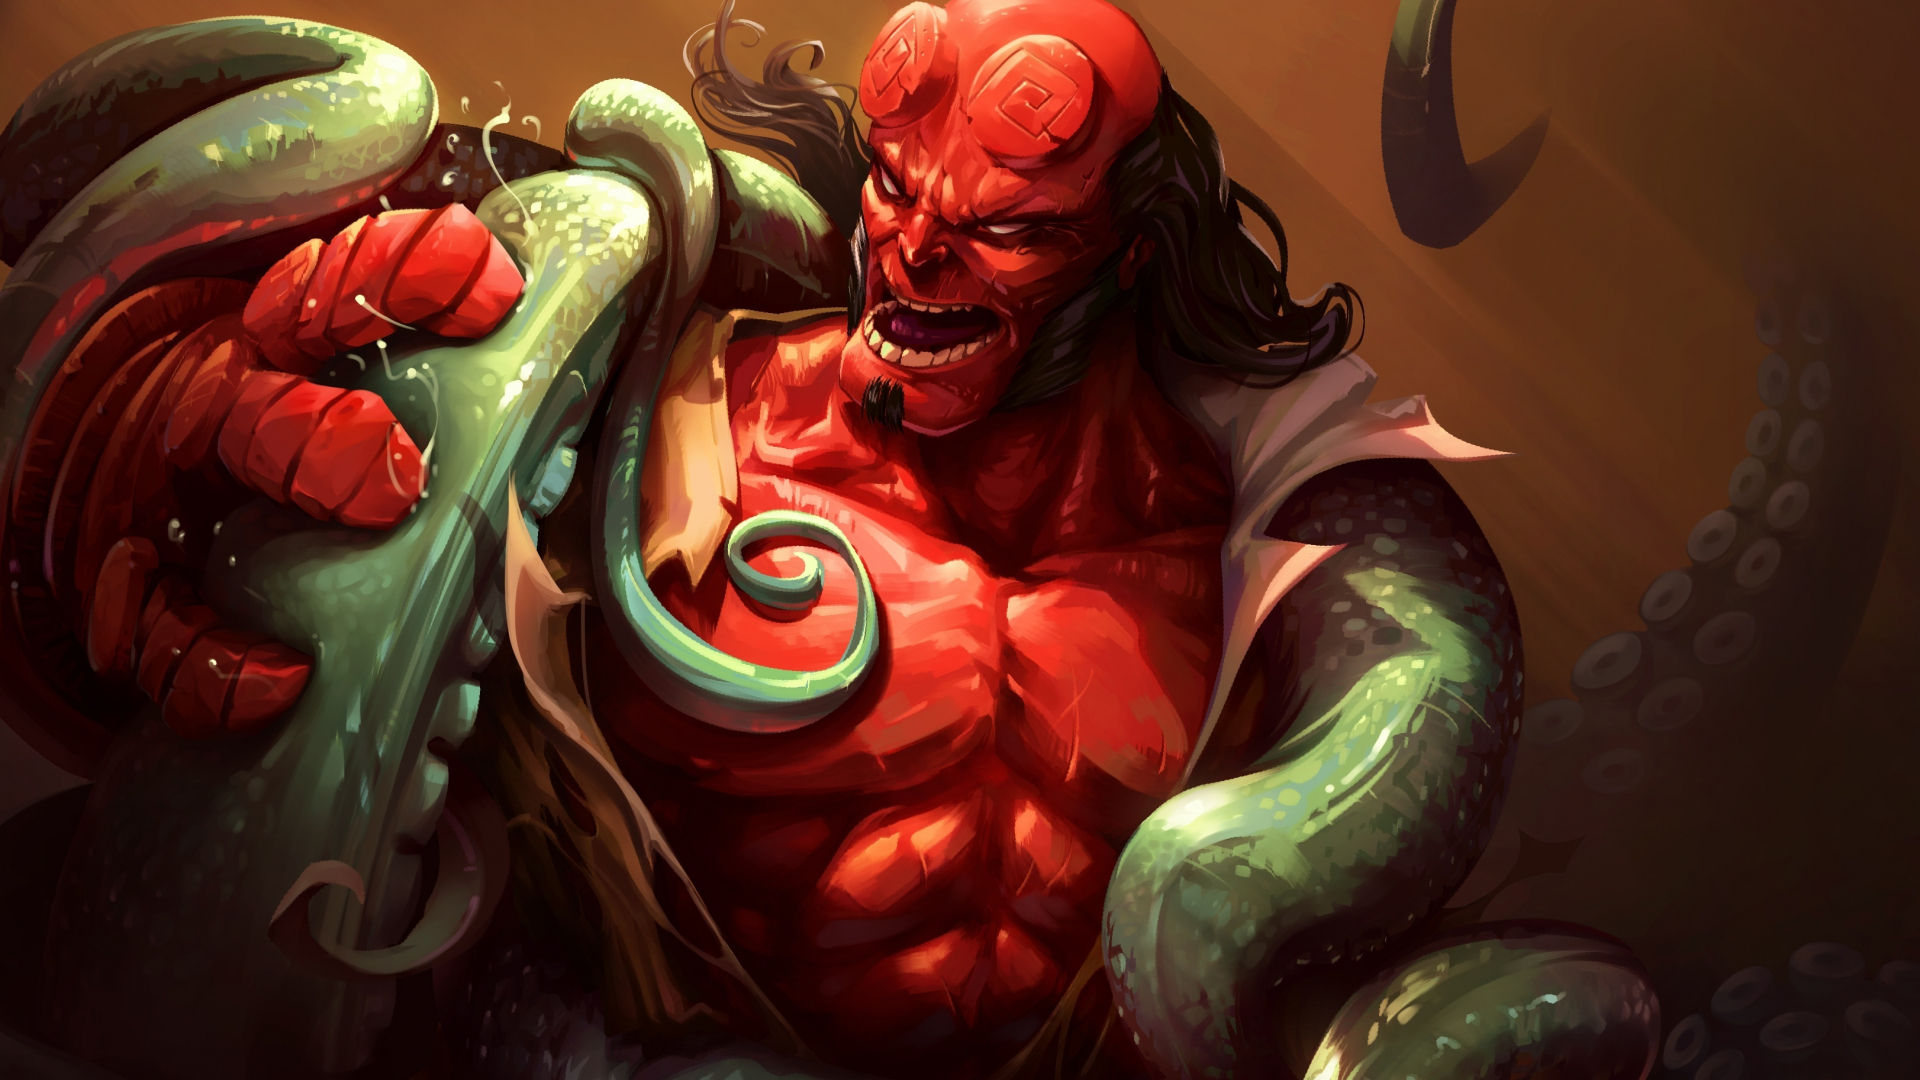 Download 1920x1080 Wallpaper Red Hellboy And Creature Fight Art